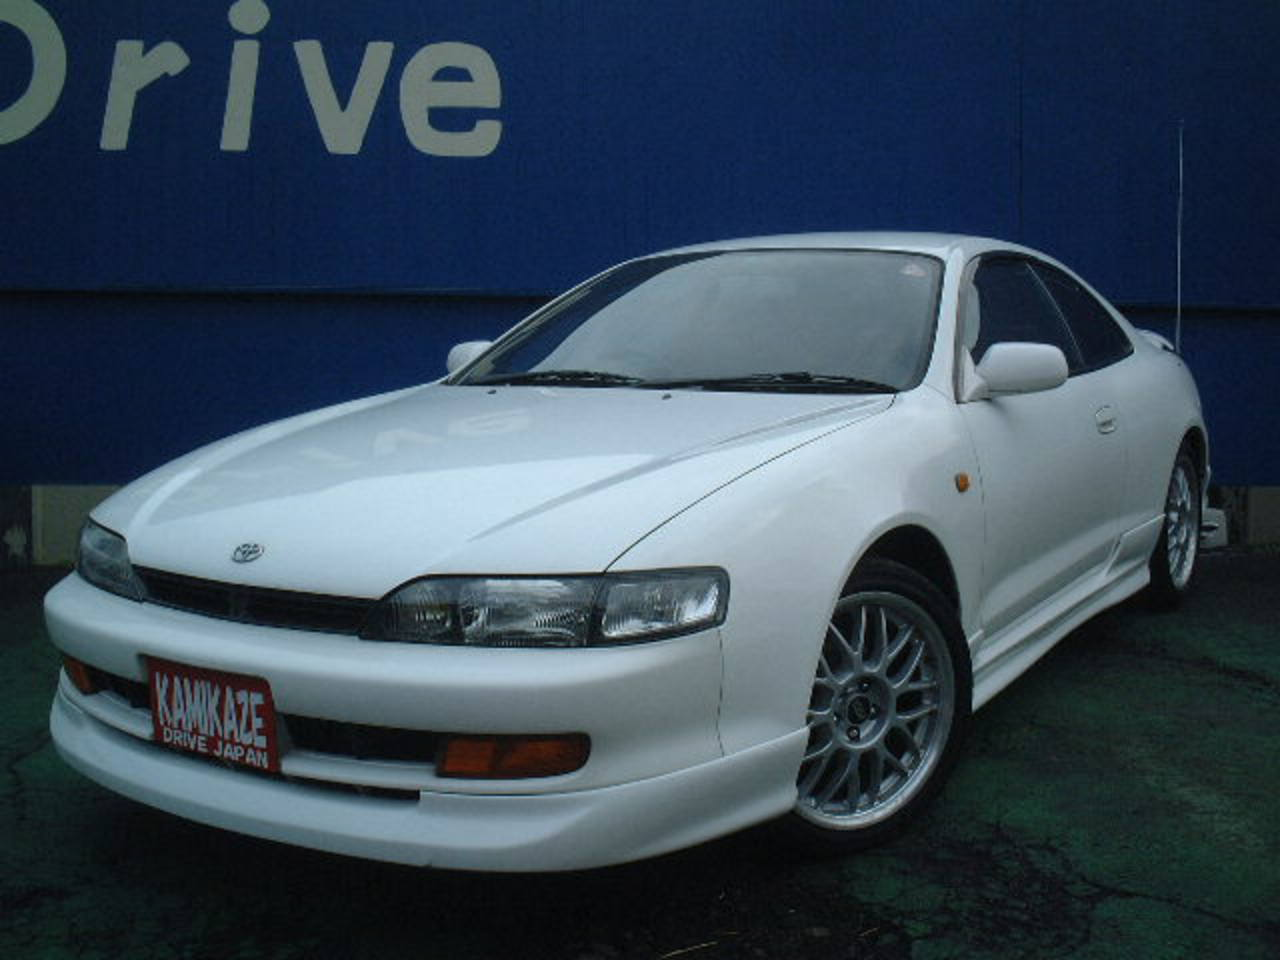 1995 Toyota CURREN XS (ST206) sale from Japan